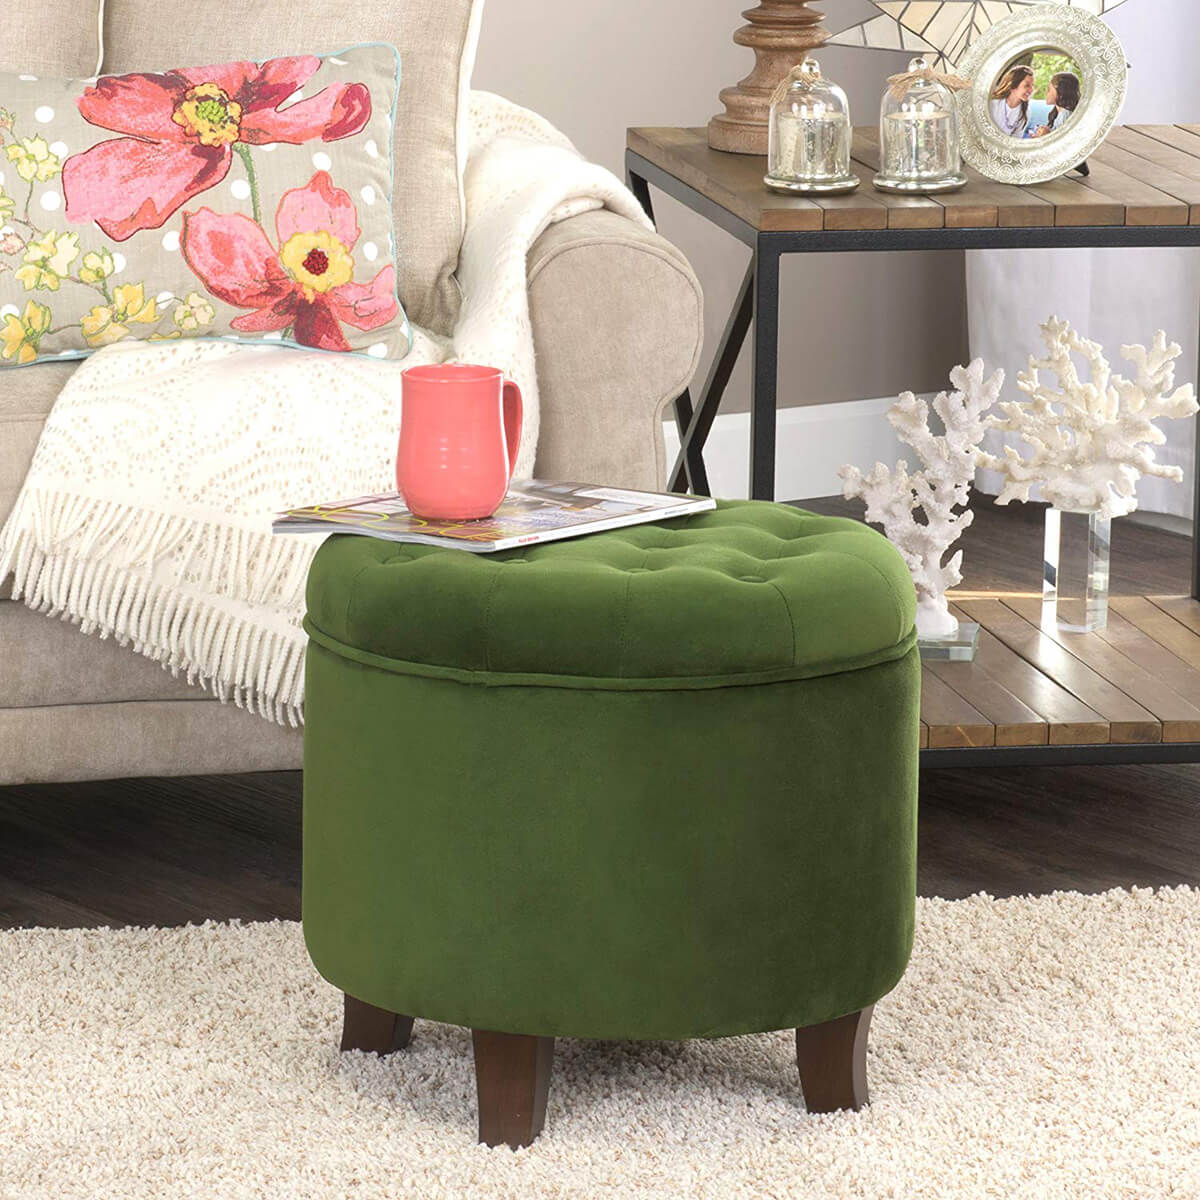 Round Velvet Tufted Ottoman with Removable Lid for Storage